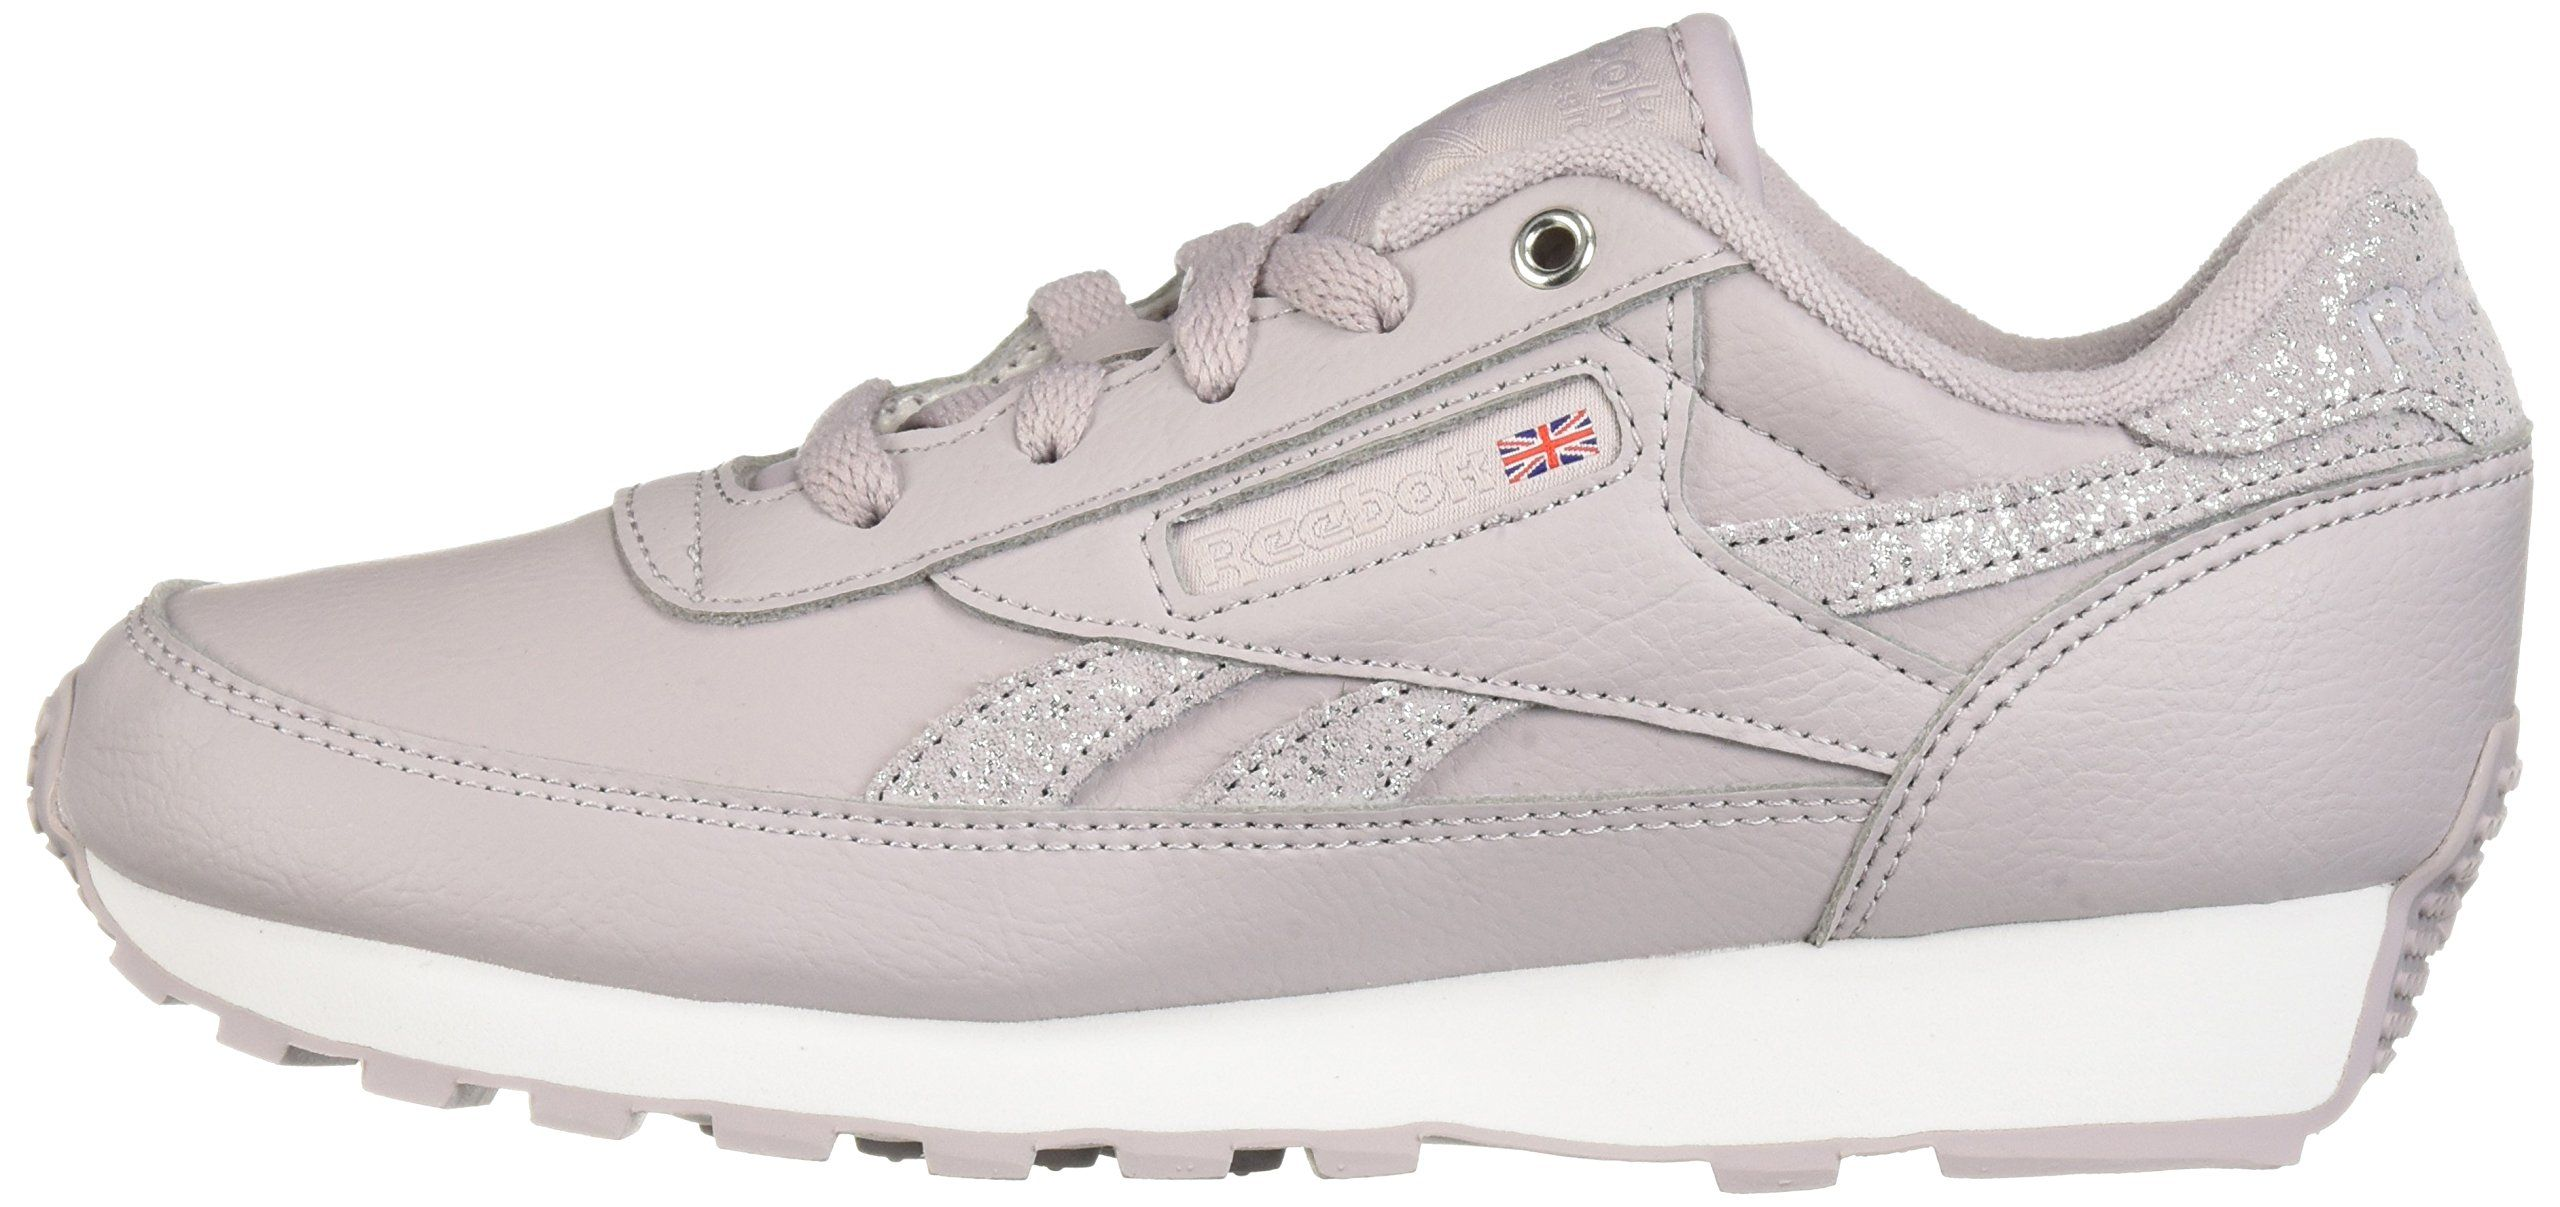 263935b00c7 Reebok Womens Classic Renaissance Walking Shoe USALavender Luck White Si  7.5 M US   You can get more details by clicking on the image.